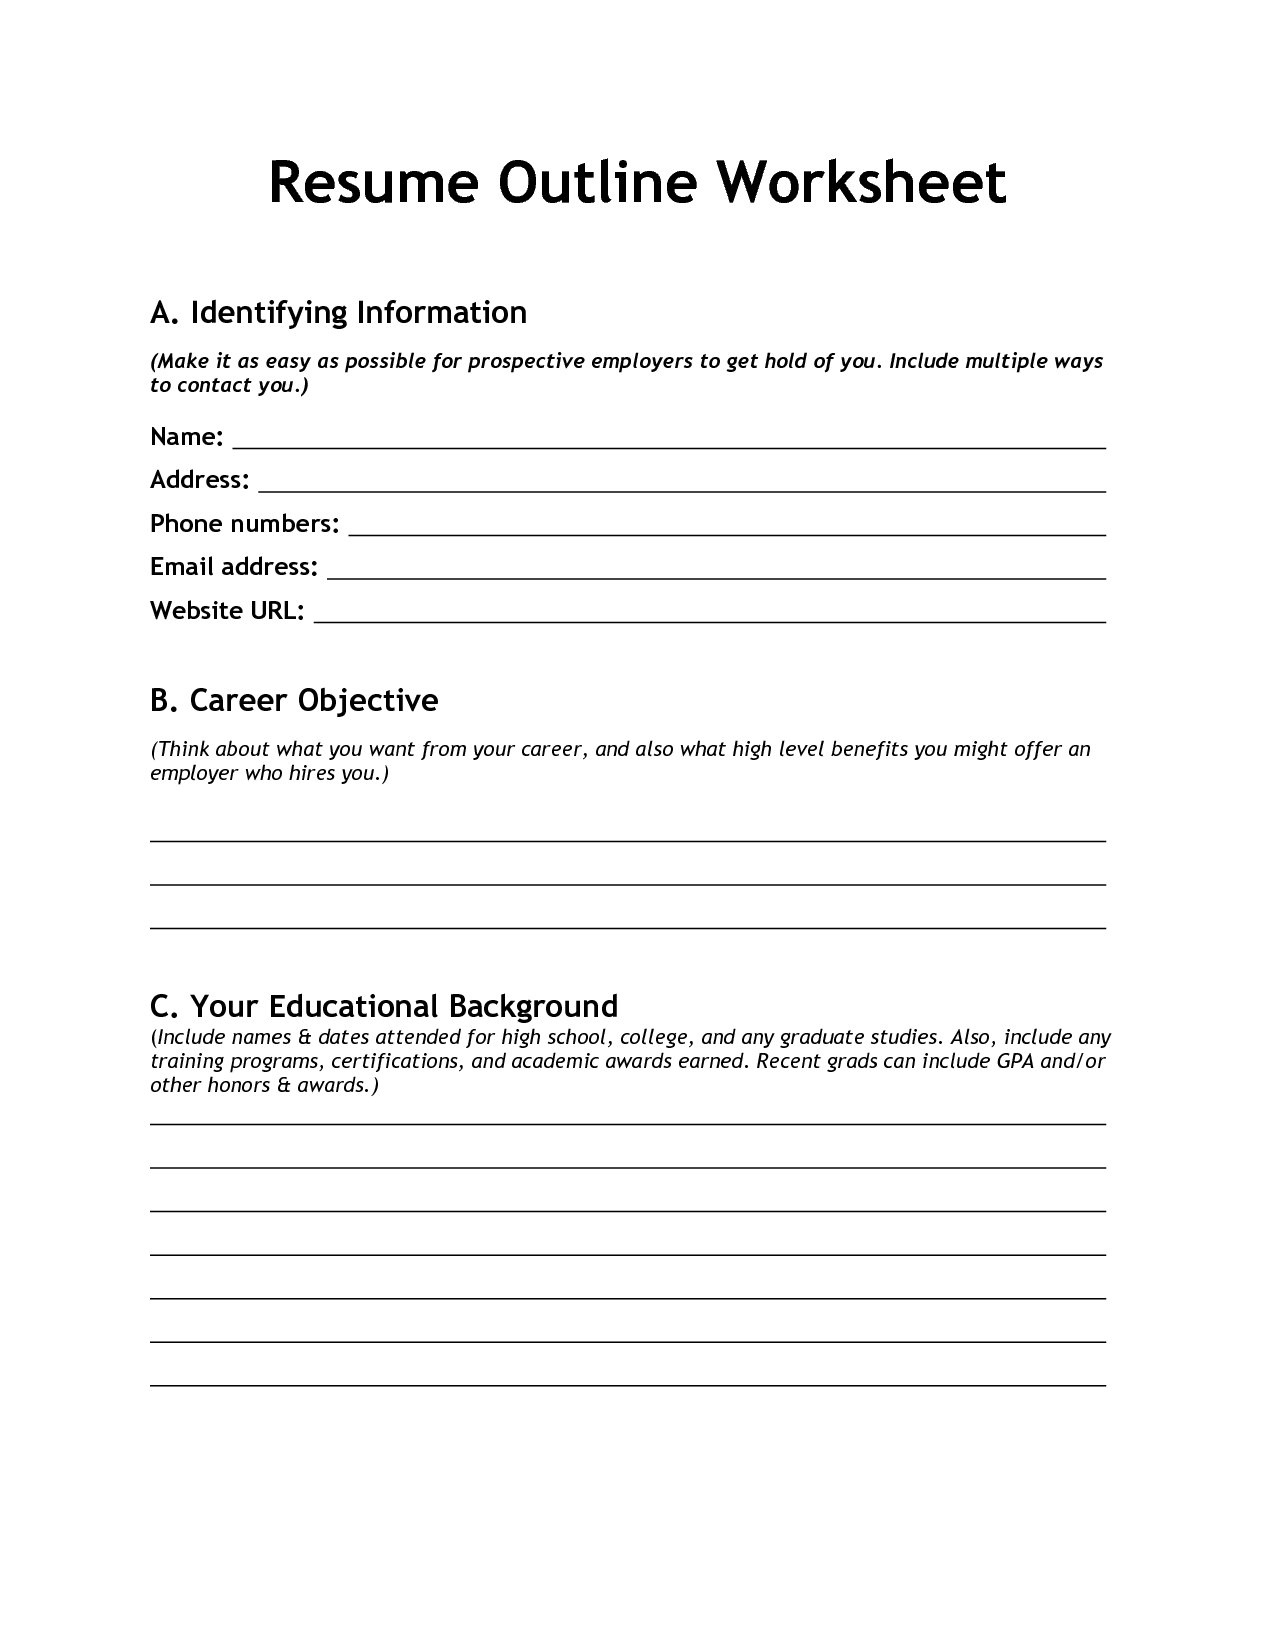 10 Best Images Of Blank Resume Template Worksheet